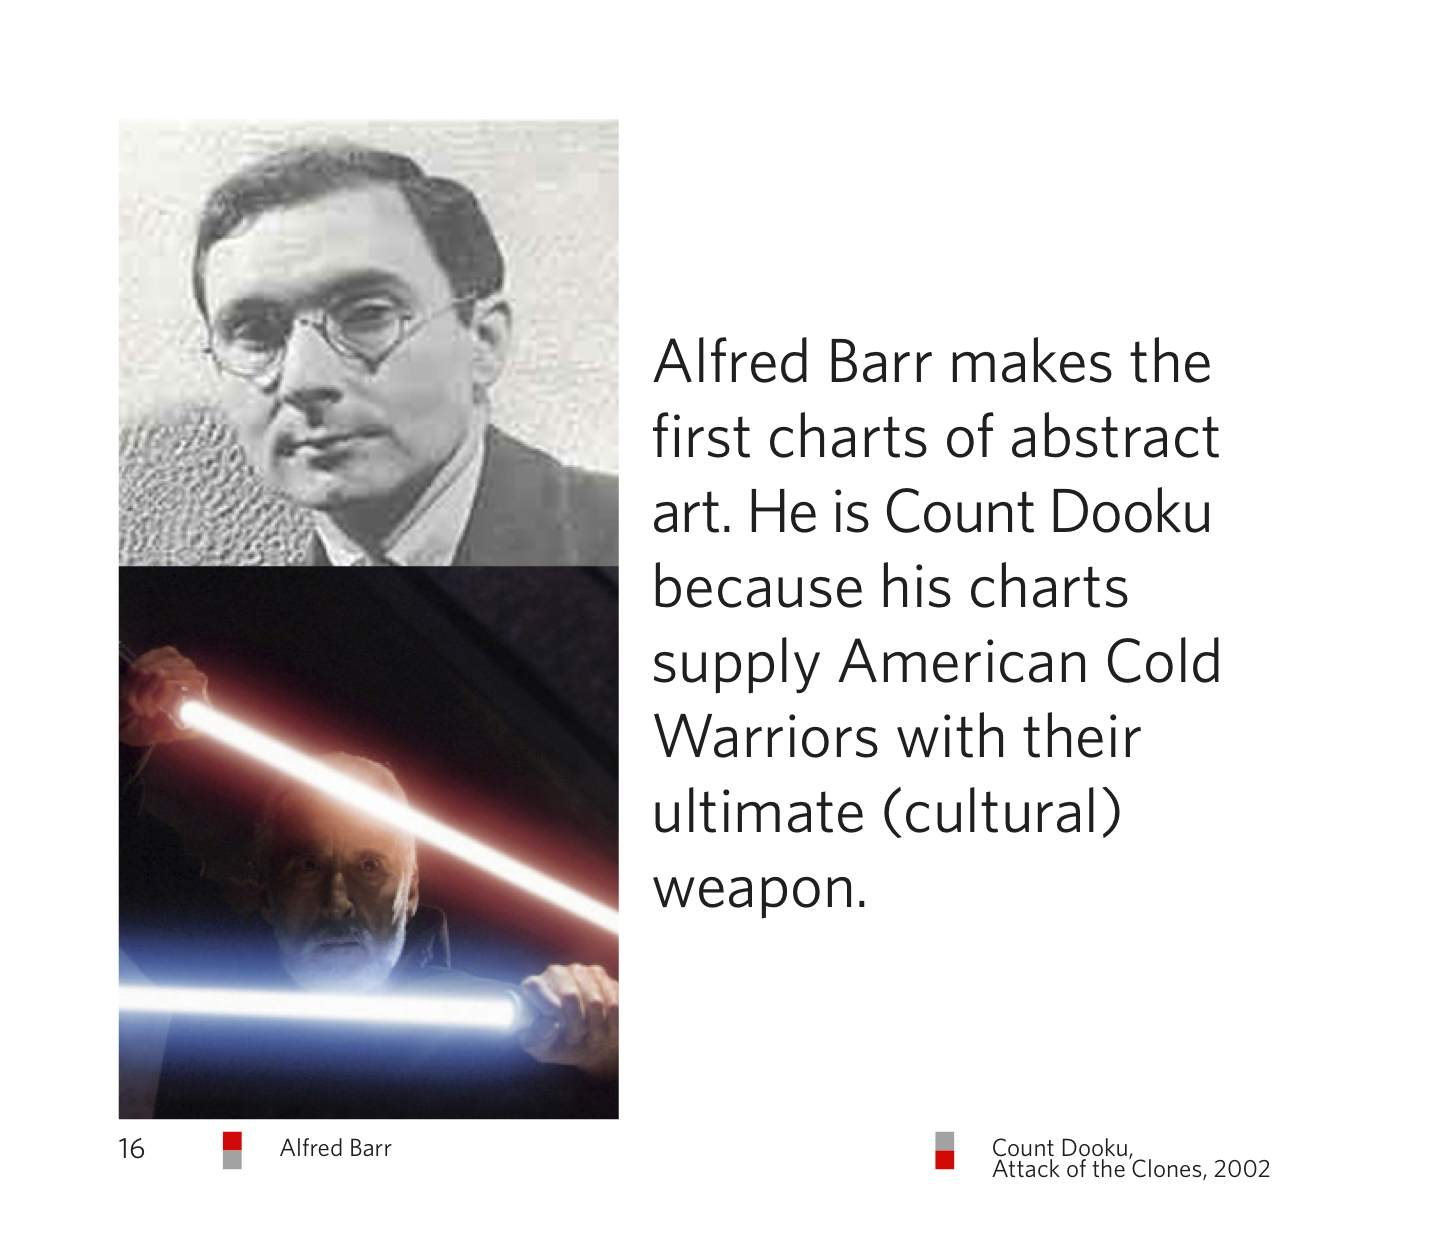 star wars modern star wars modernism episode iv the hope of alfred barr set up the first modern art history department and was the founding director of the moma the the show he organized cubism and abstract art